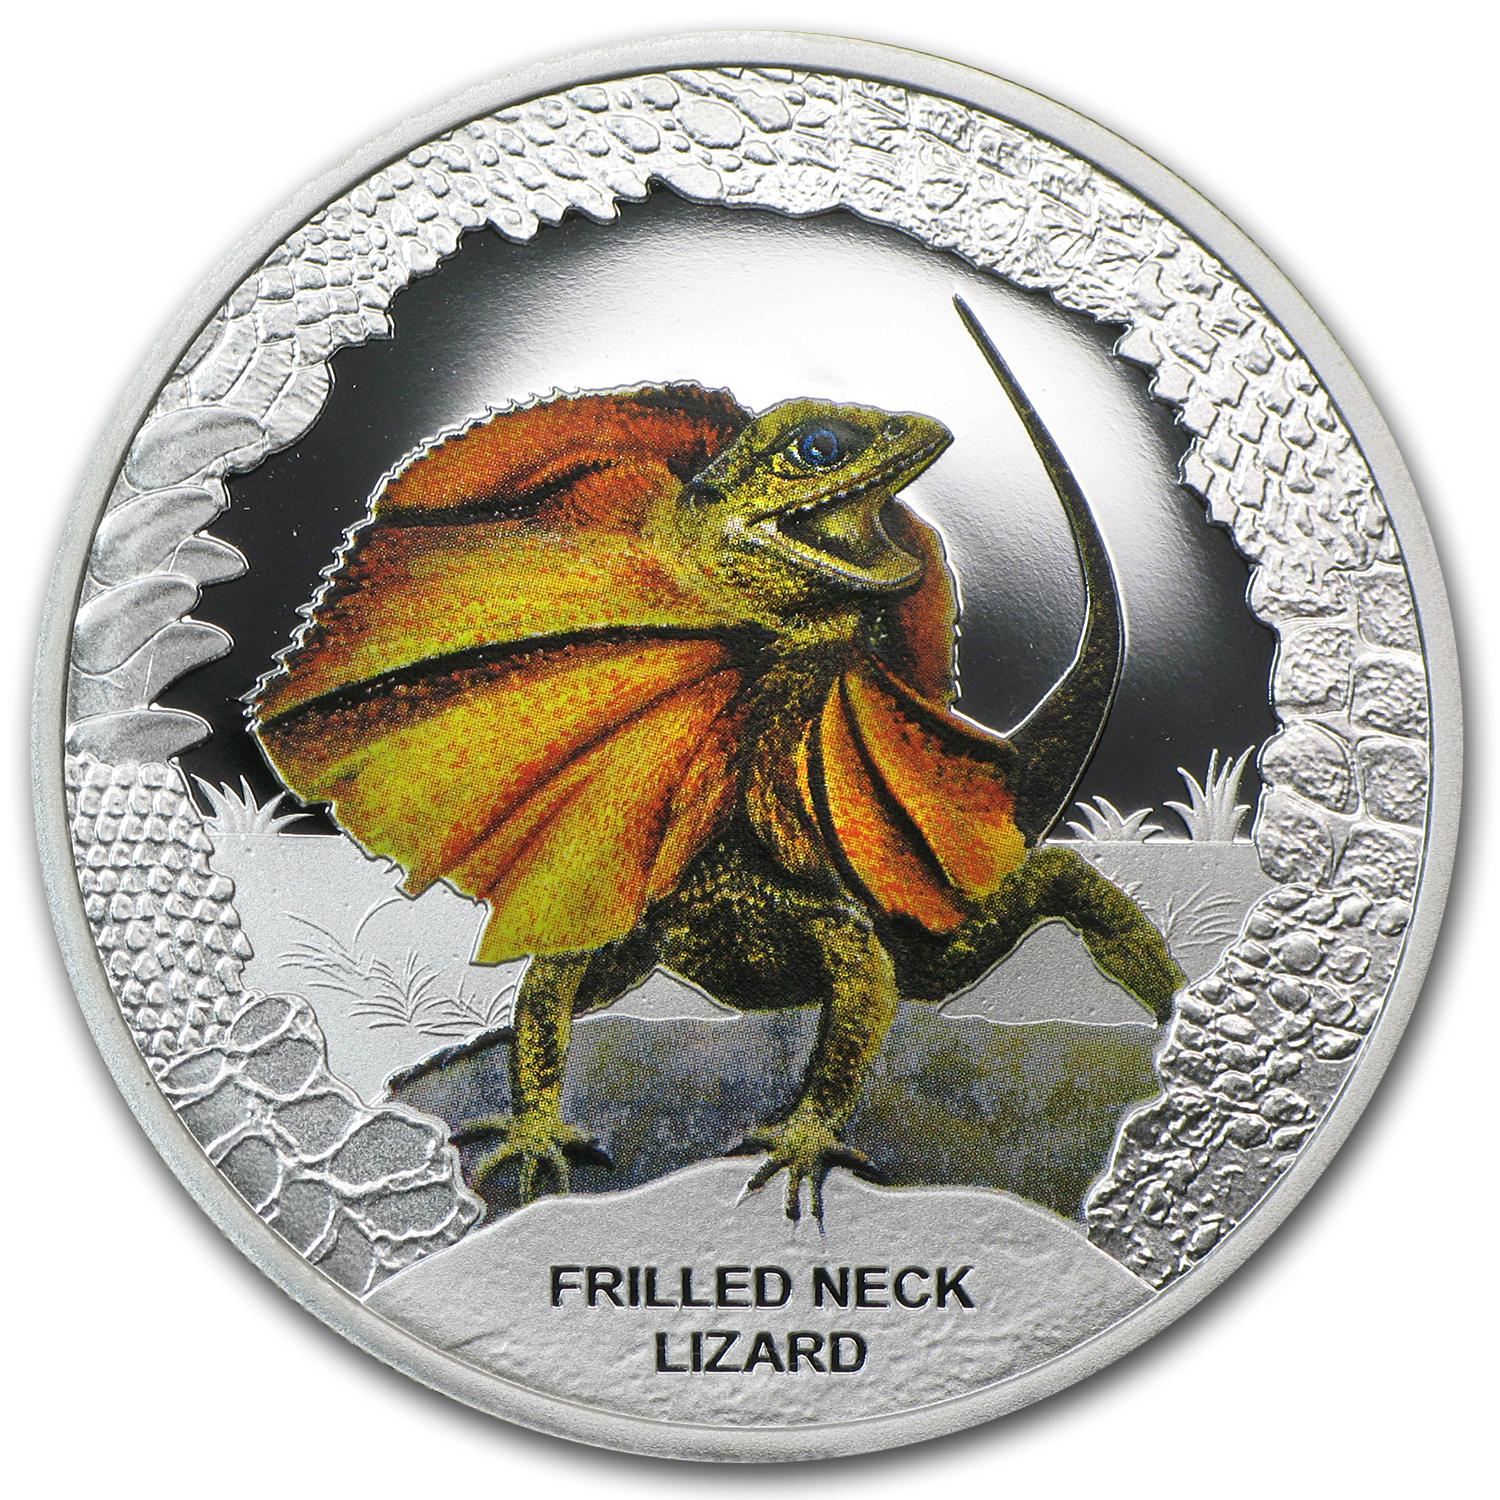 Tuvalu 2013 Silver $1 Reptile Series - The Frilled Neck Lizard